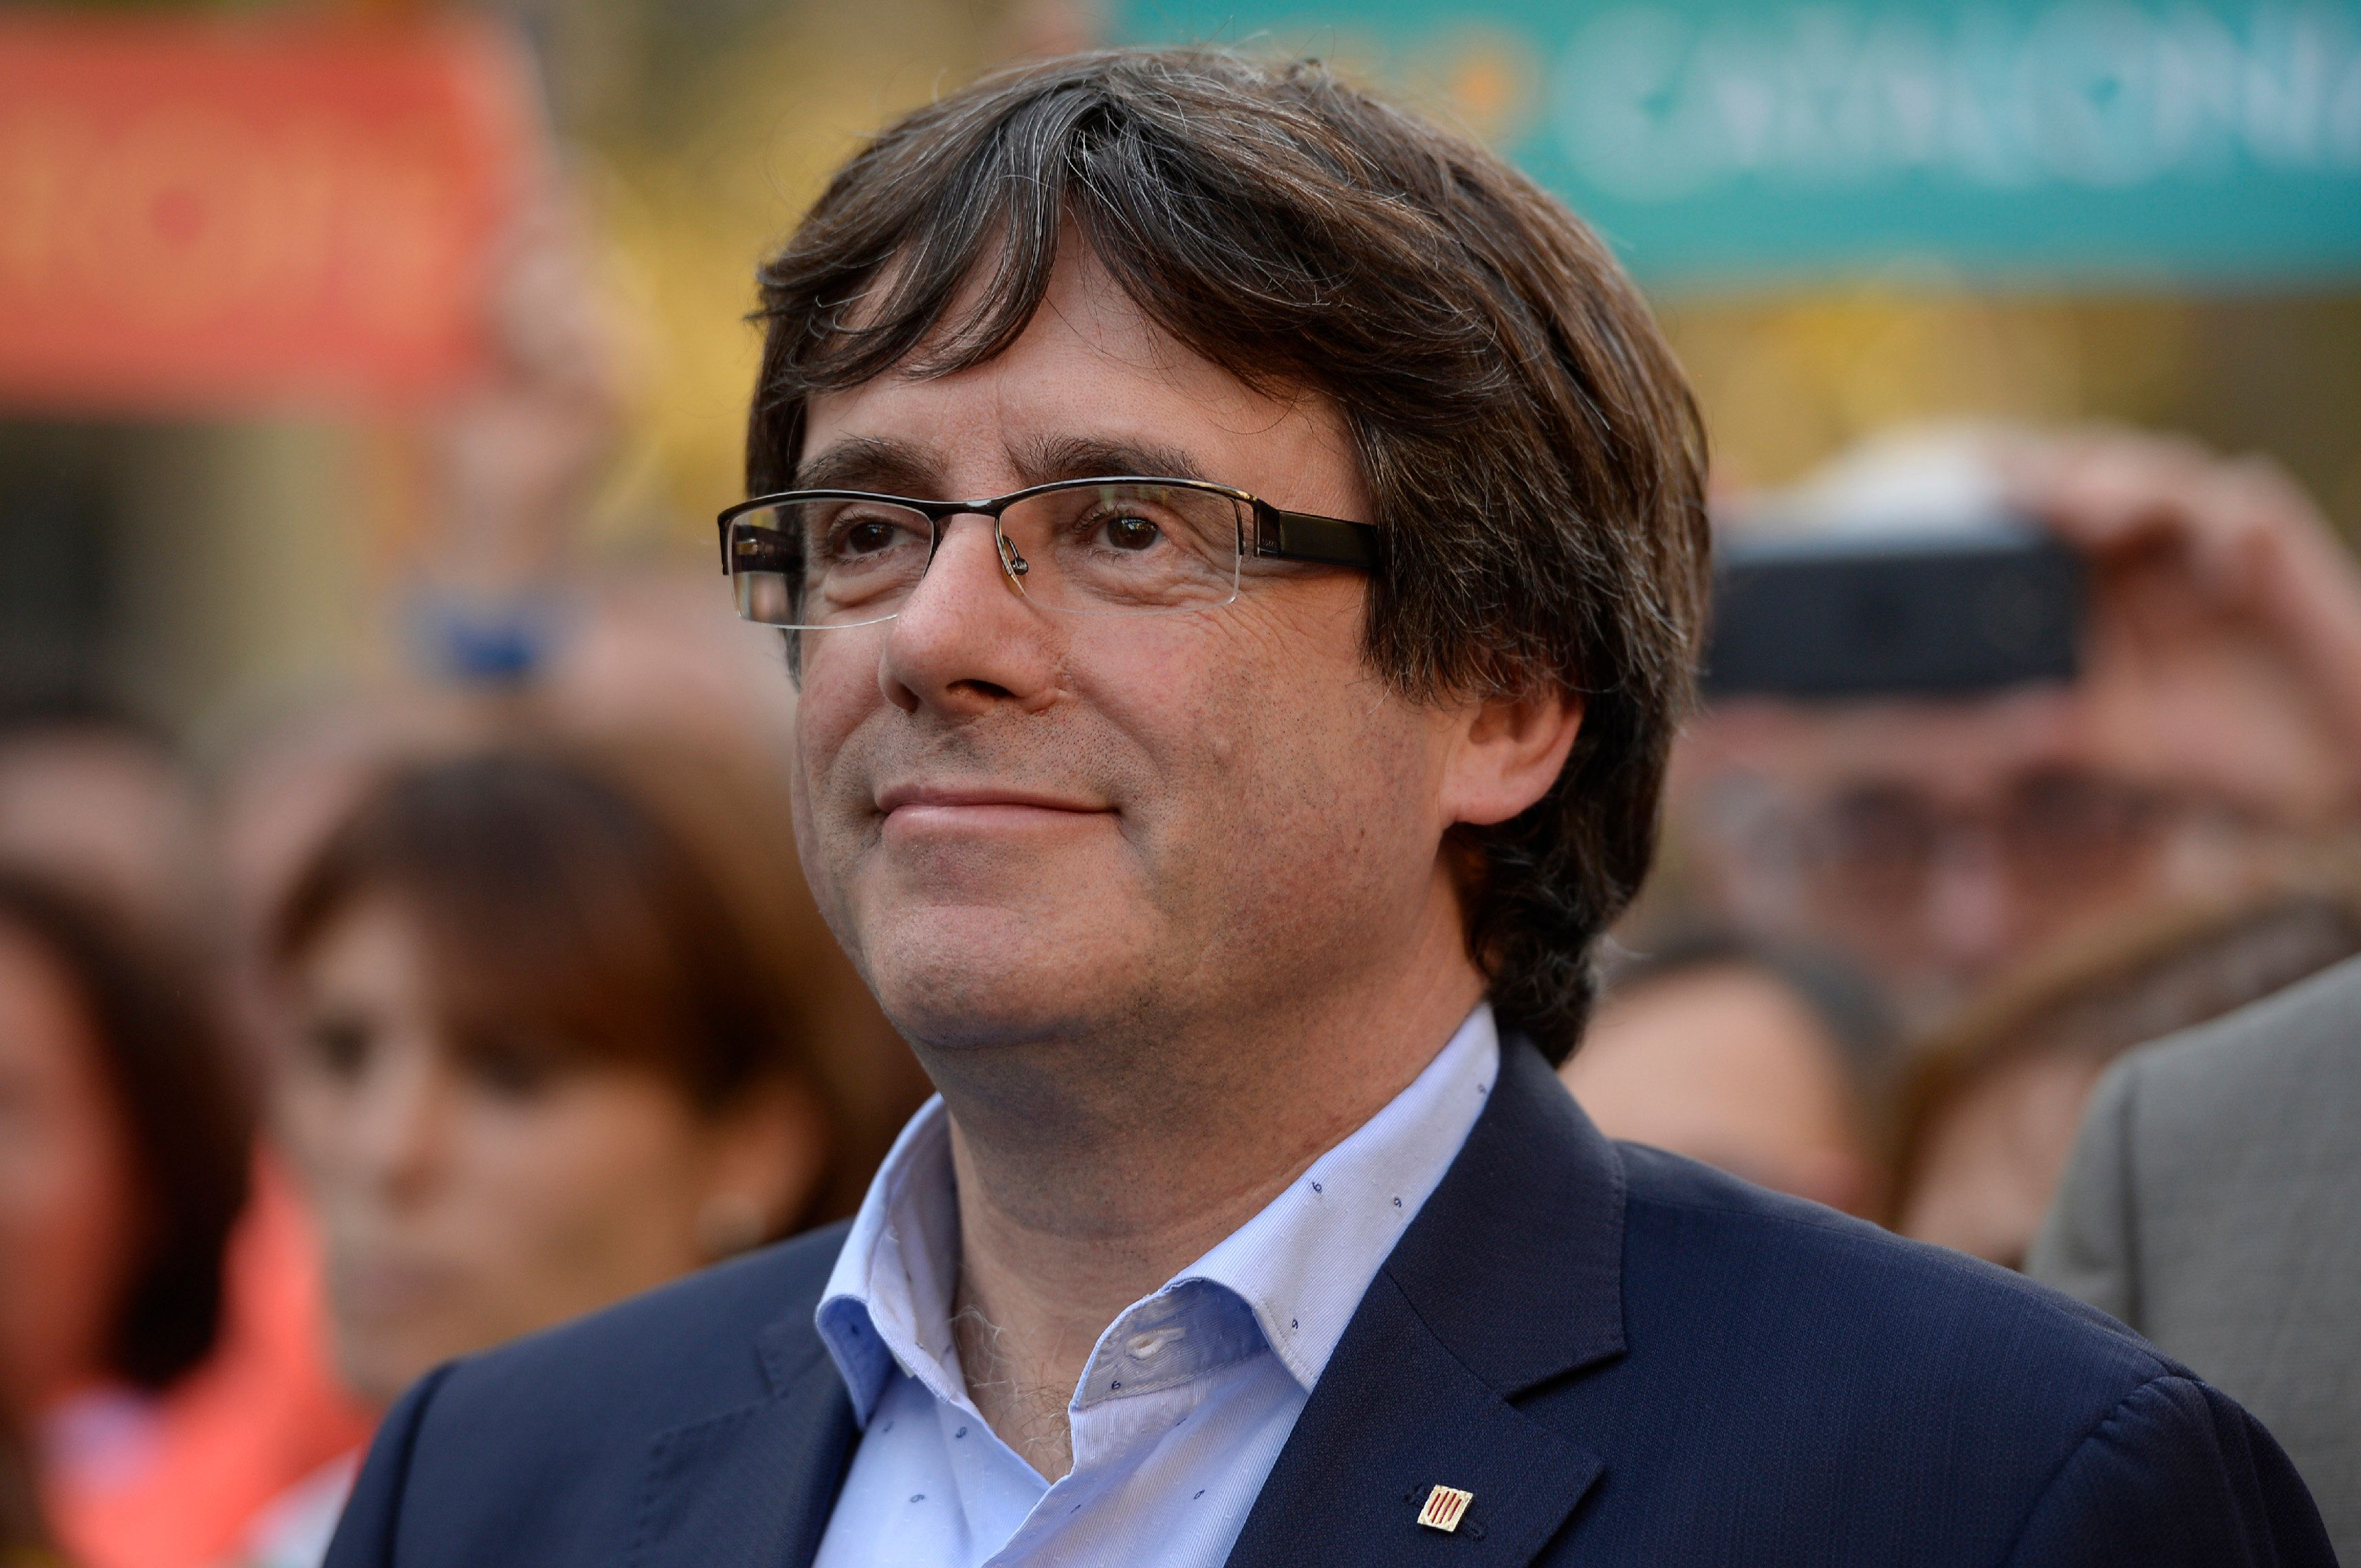 ?Catalan regional president Carles Puigdemont attends a demonstration on October 21, 2017 in Barcelona, to support two leaders of Catalan separatist groups, Jordi Sanchez and Jordi Cuixart, who have been detained pending an investigation into sedition charges. Spain announced that it will move to dismiss Catalonia's separatist government and call fresh elections in the semi-autonomous region in a bid to stop its leaders from declaring independence. / AFP PHOTO / Josep LAGO        (Photo credit should read JOSEP LAGO/AFP/Getty Images)